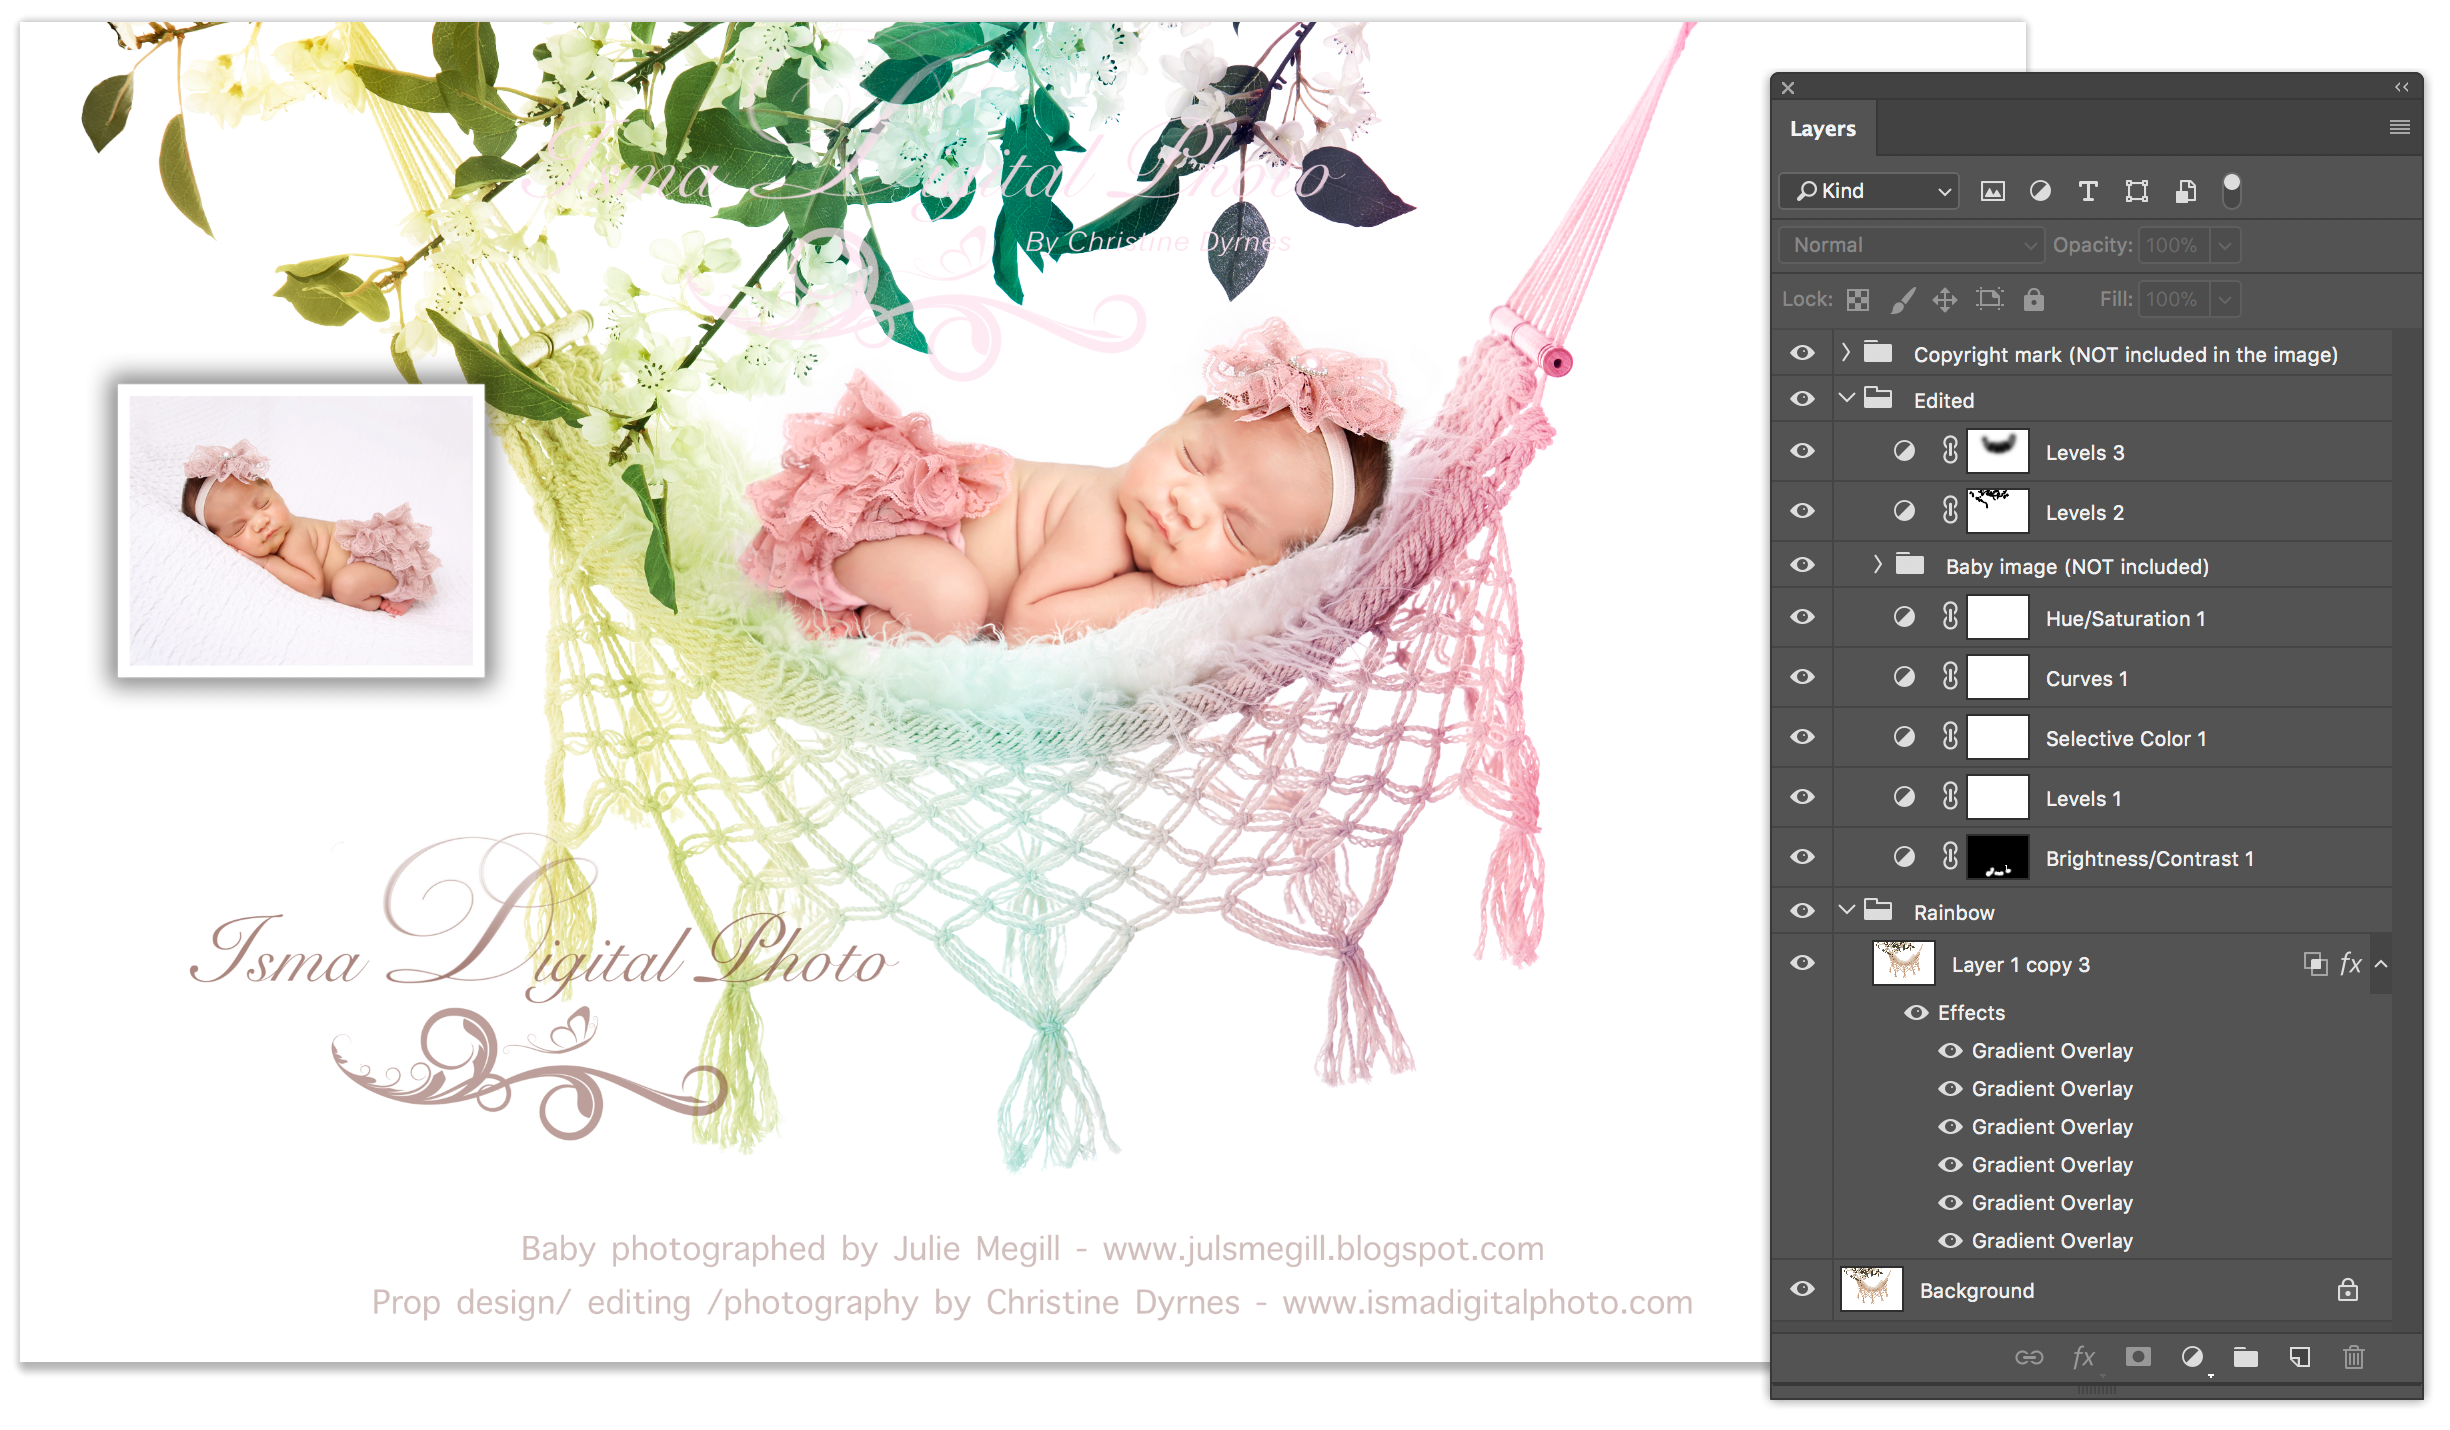 Hammock with pure white background and flowers  Digital Photography Backdrop /Props for Newborn Photography - High resolution digital backdrop - Two JPG and one PSD file with layers